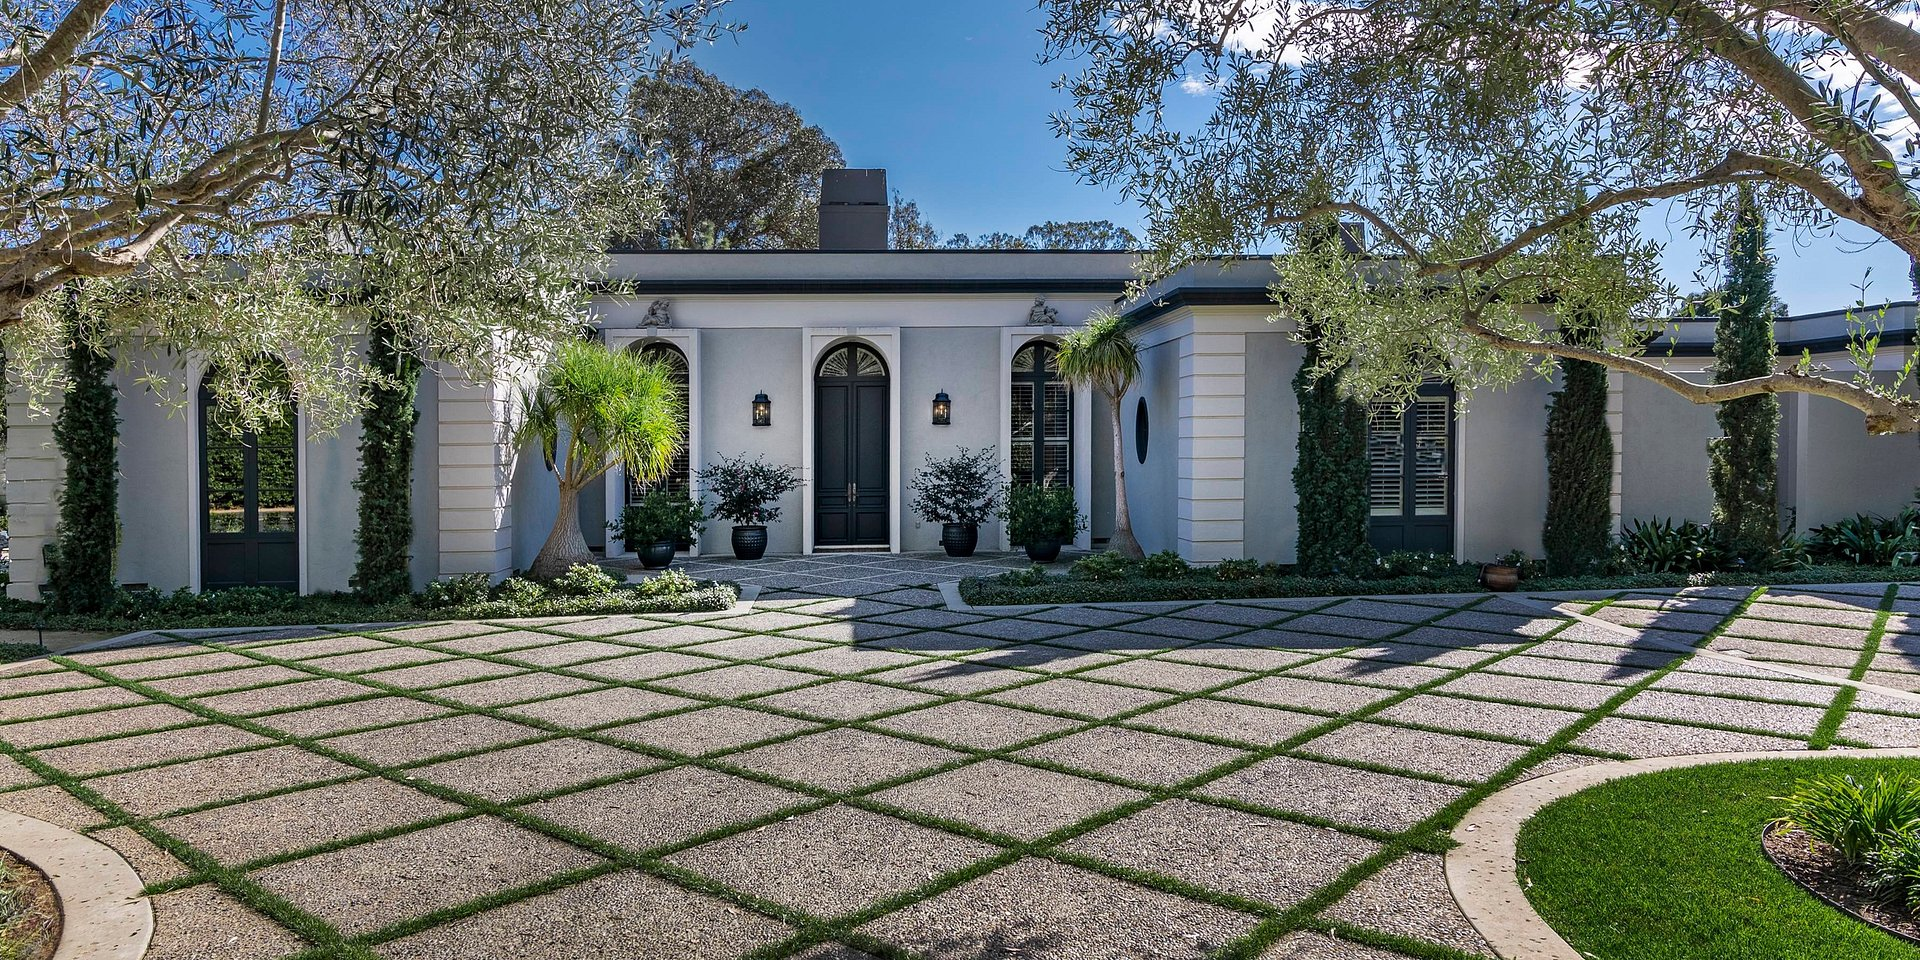 Coldwell Banker Realty Lists a Santa Barbara Property for $5.28 Million